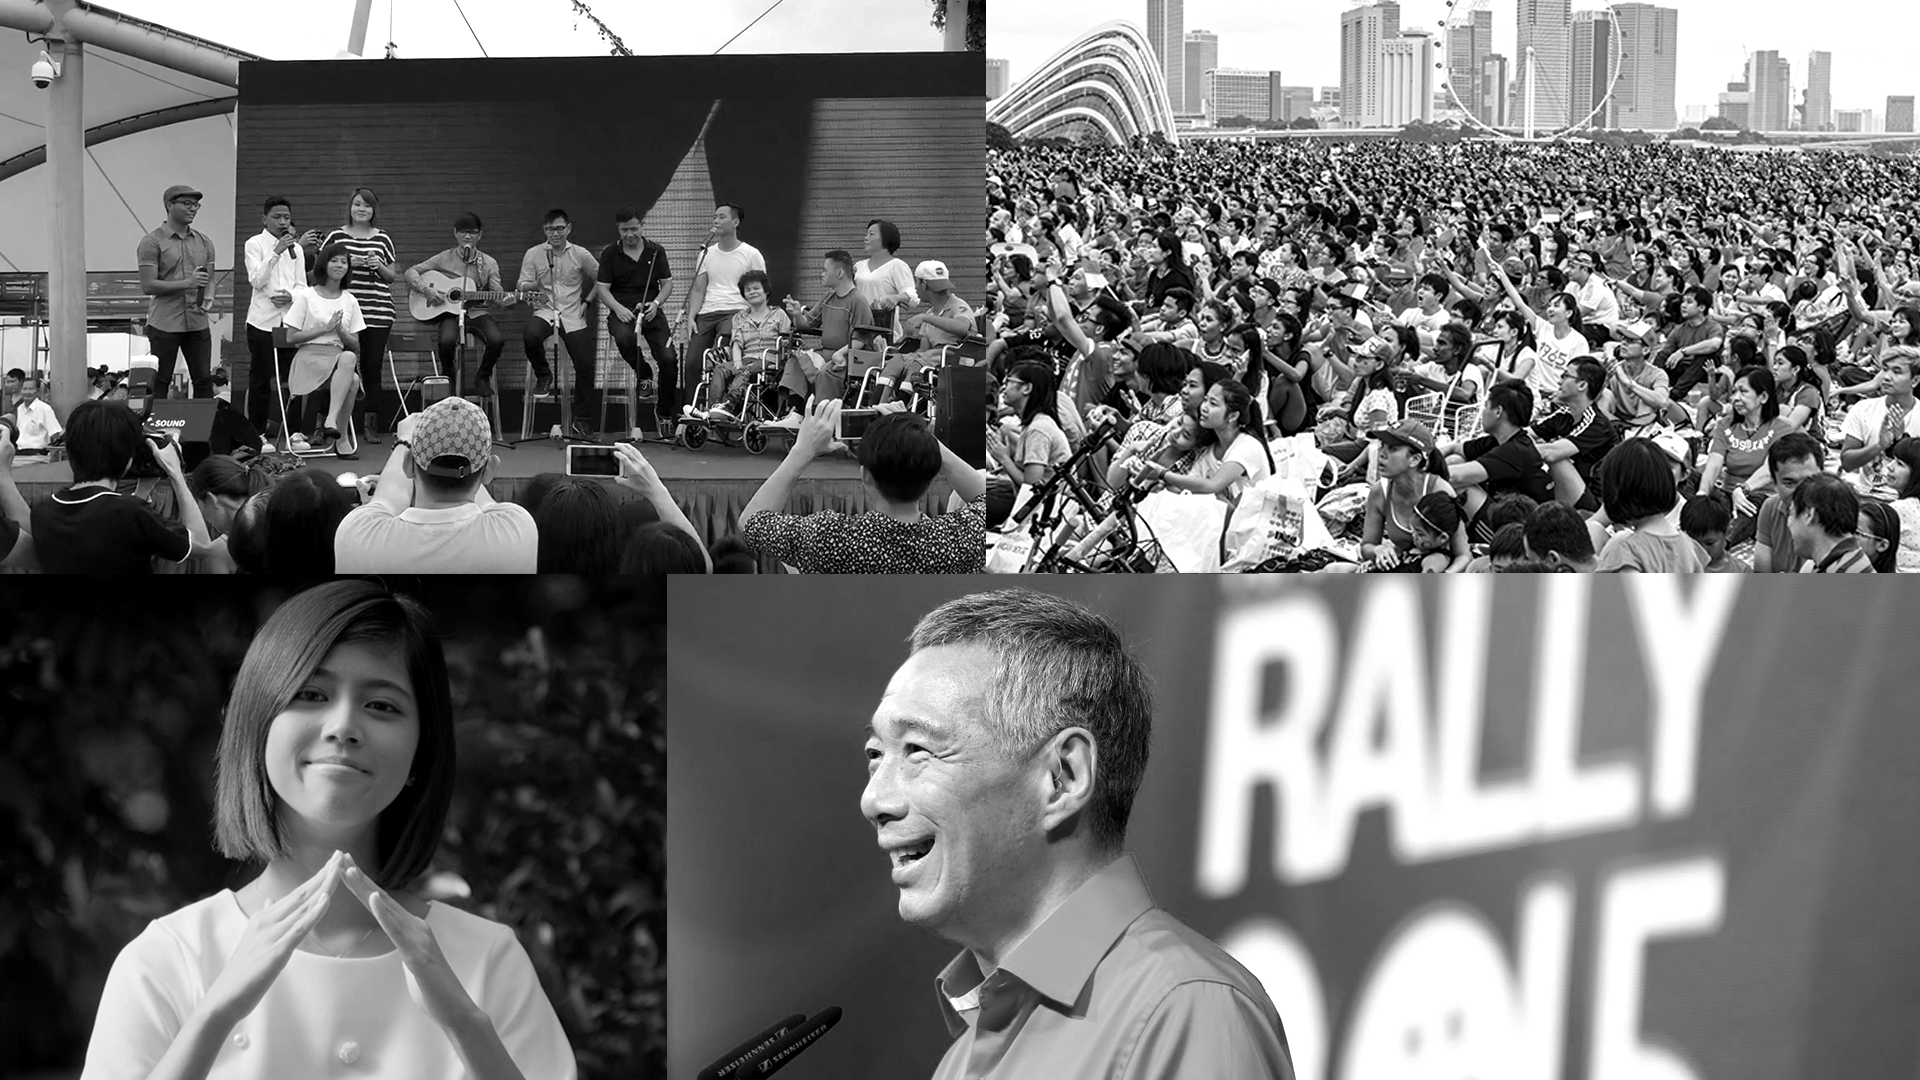 Our stars were invited to perform live on National Day weekend at the Marina Barrage, in front of thousands of Singaporeans. And one even got to perform alongside the original singer of 'Home', Kit Chan, during the National Day Rally.